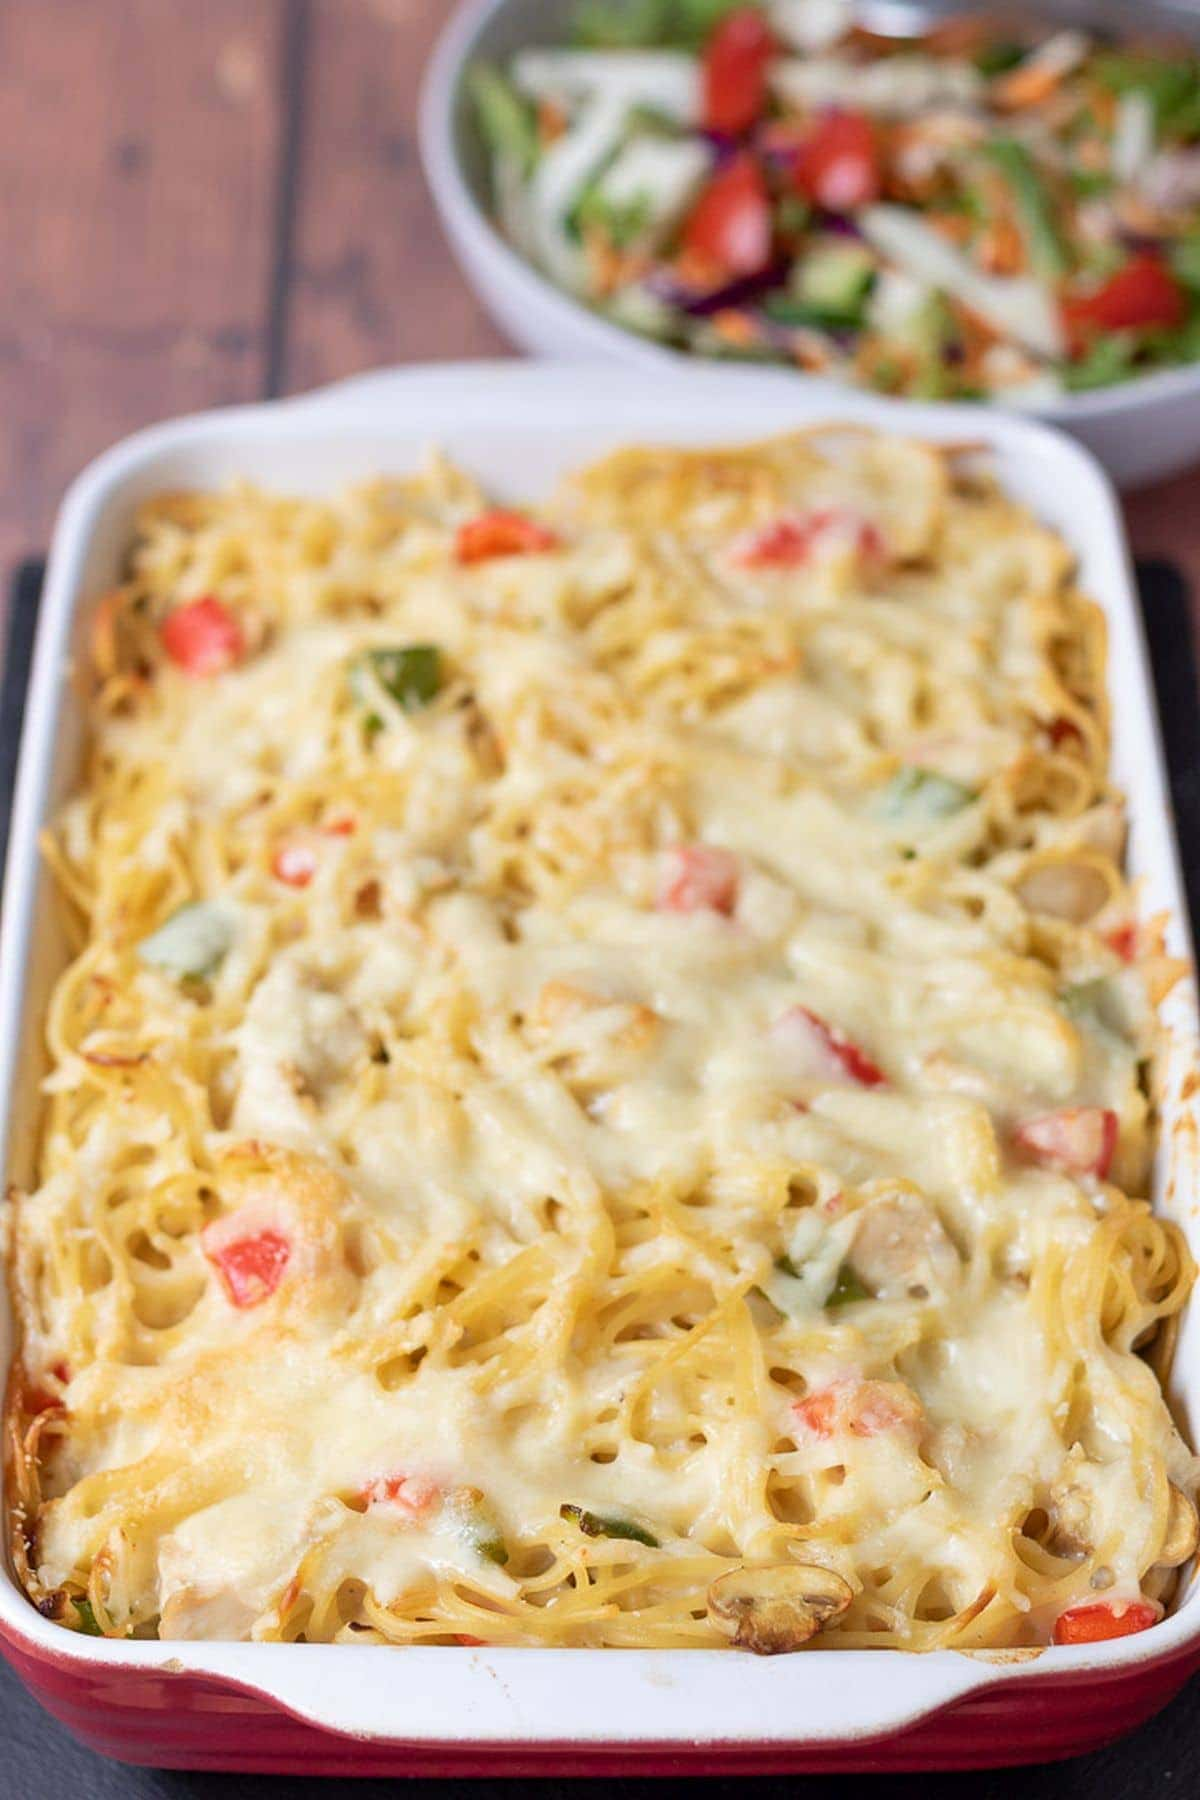 Chicken spaghetti bake in a large red stoneware dish. A bowl of salad in the background.